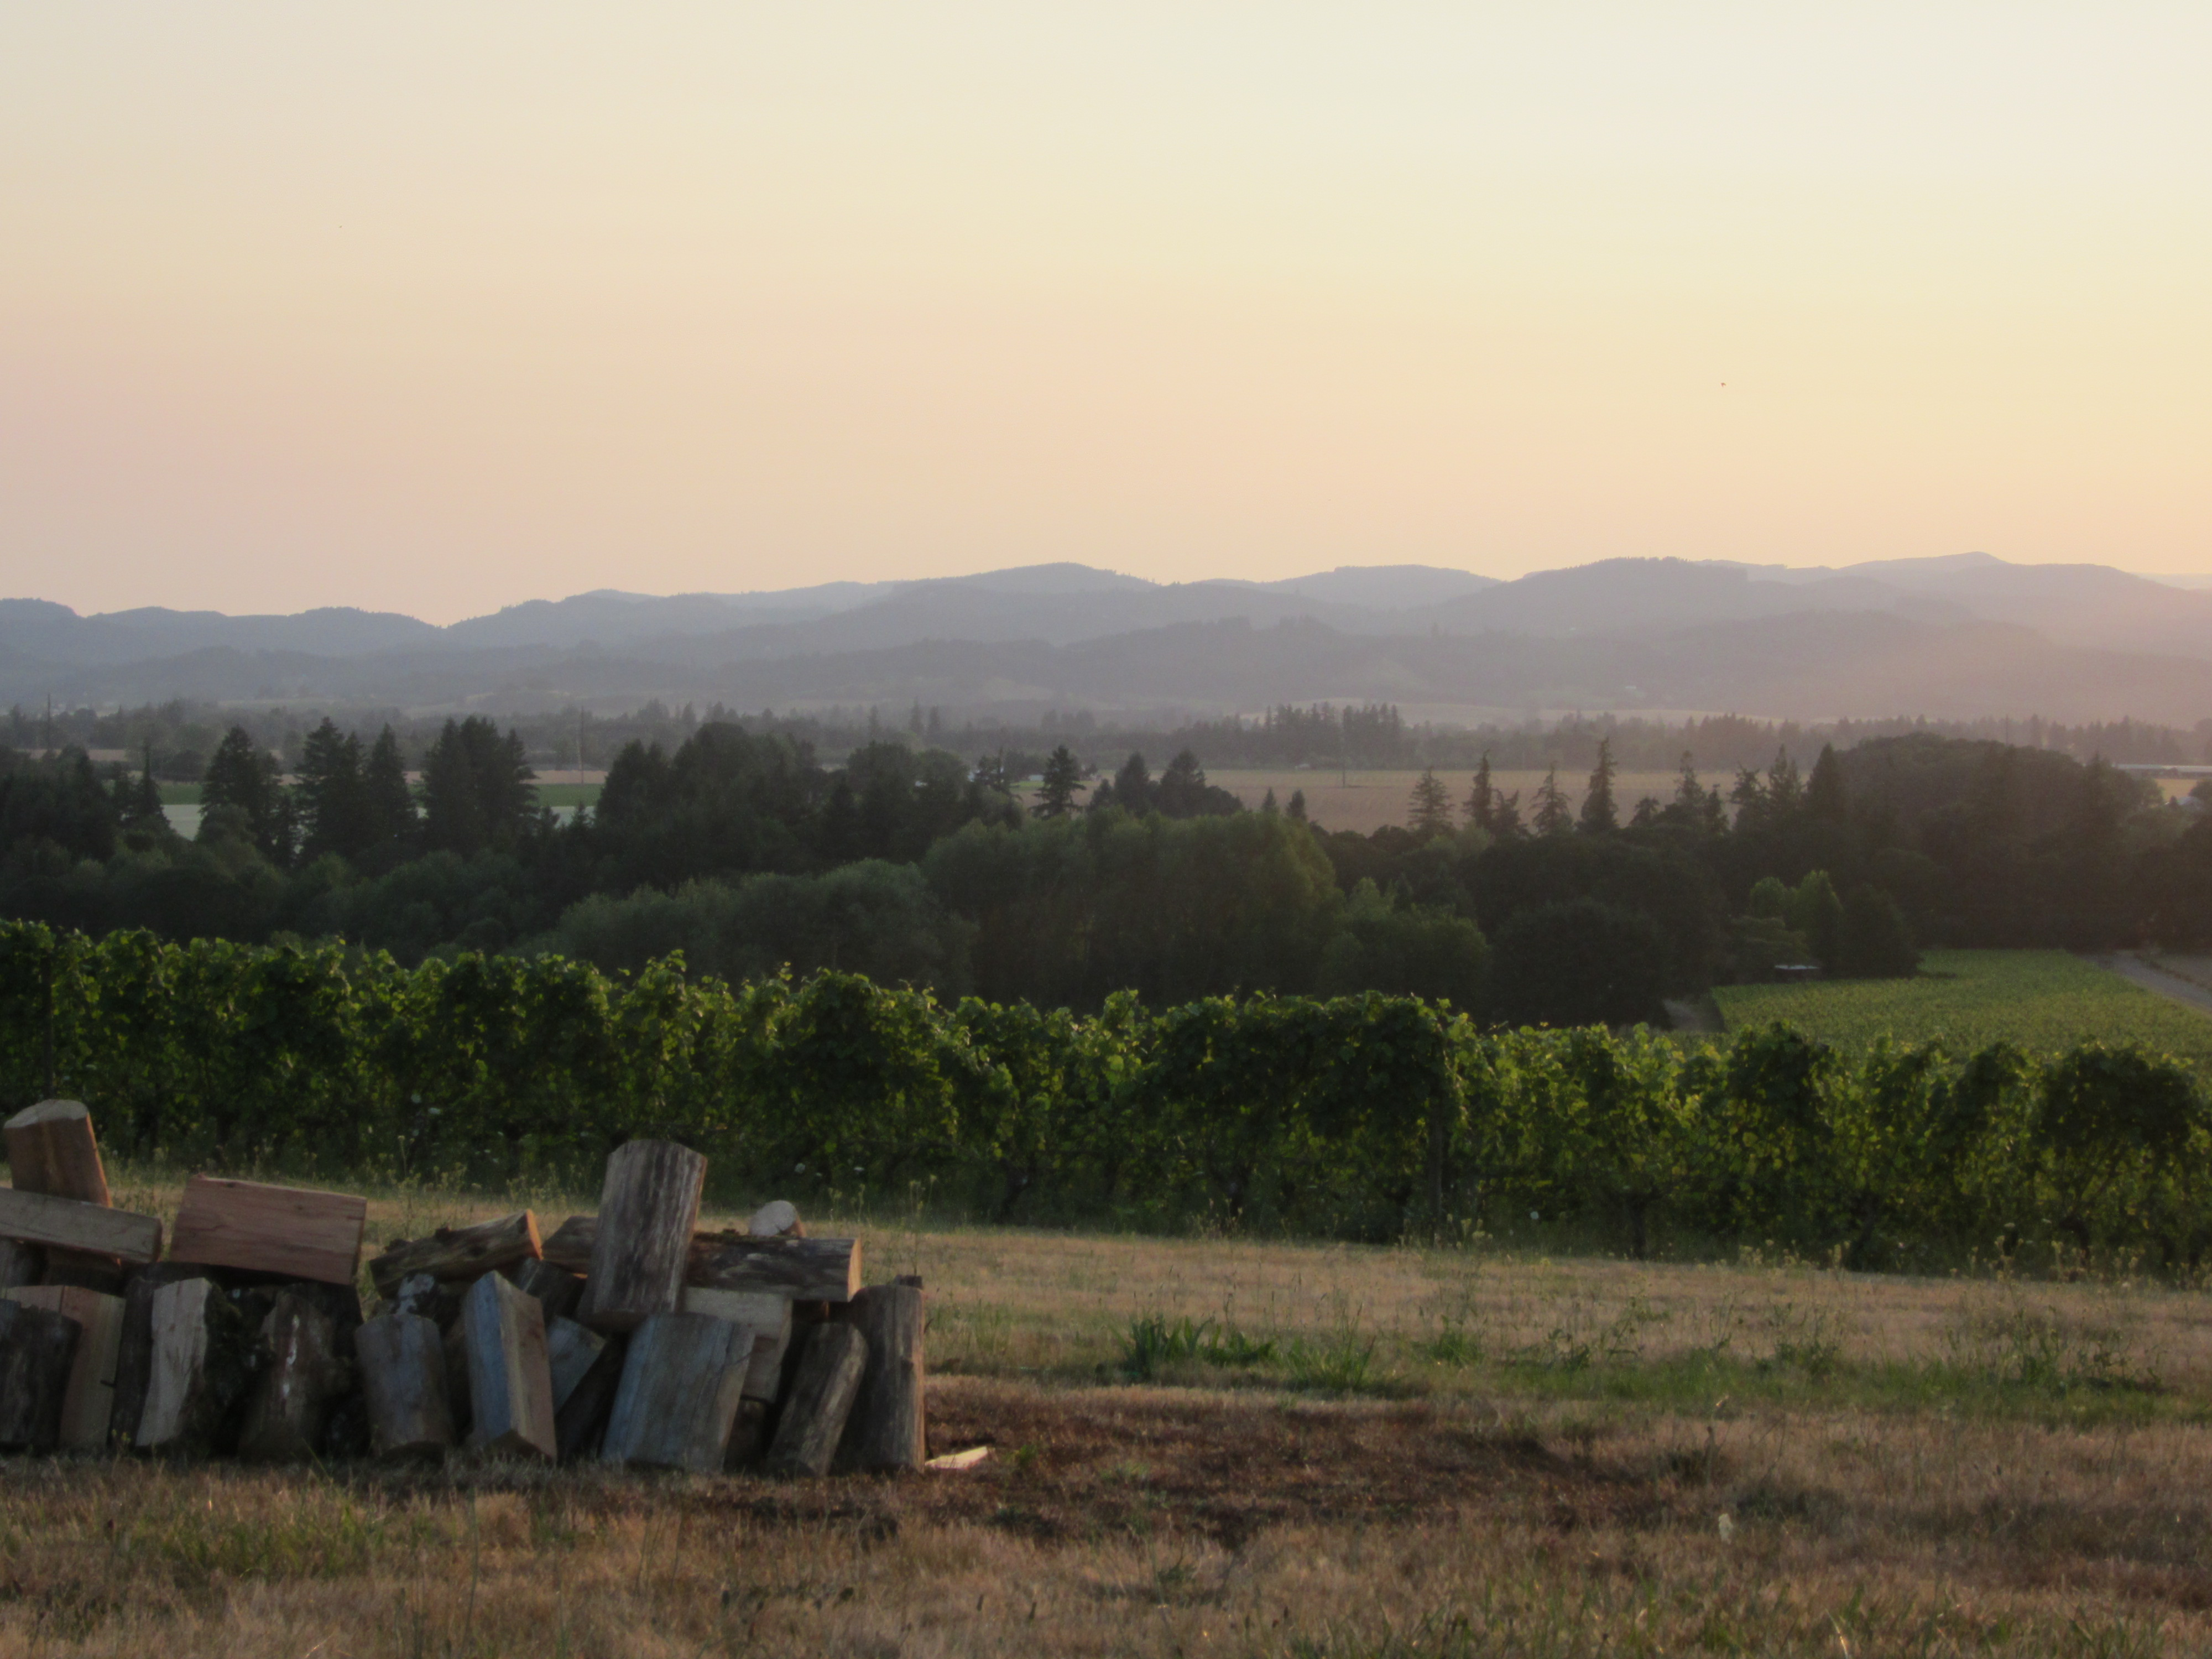 Beautiful setting out at Anne Amie Vineyards, overlooking the Willamette Valley.